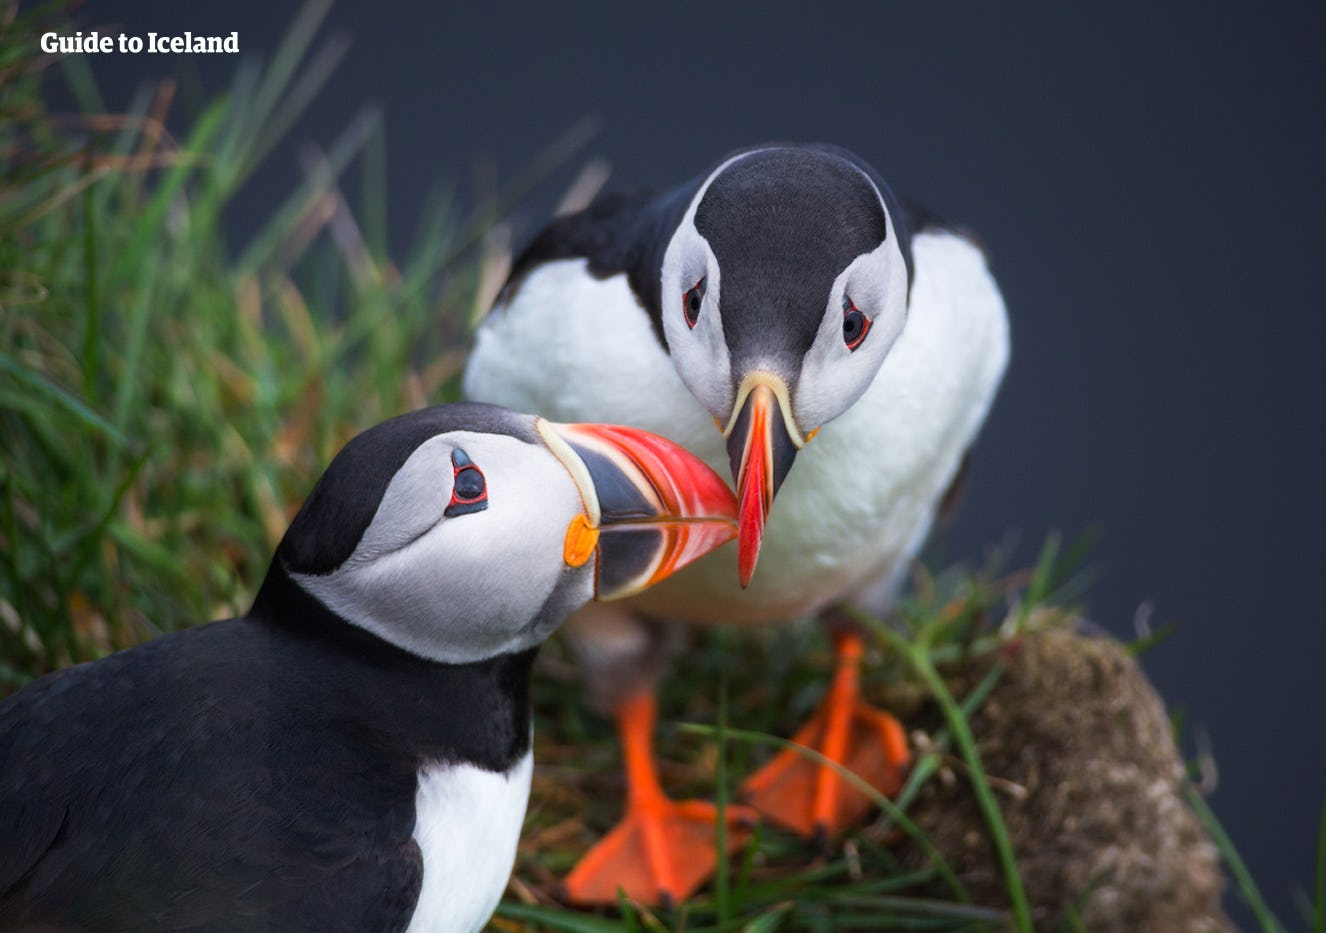 On a summer self-drive tour, you can stop at the many puffin-watching sites in Iceland to see these adorable birds